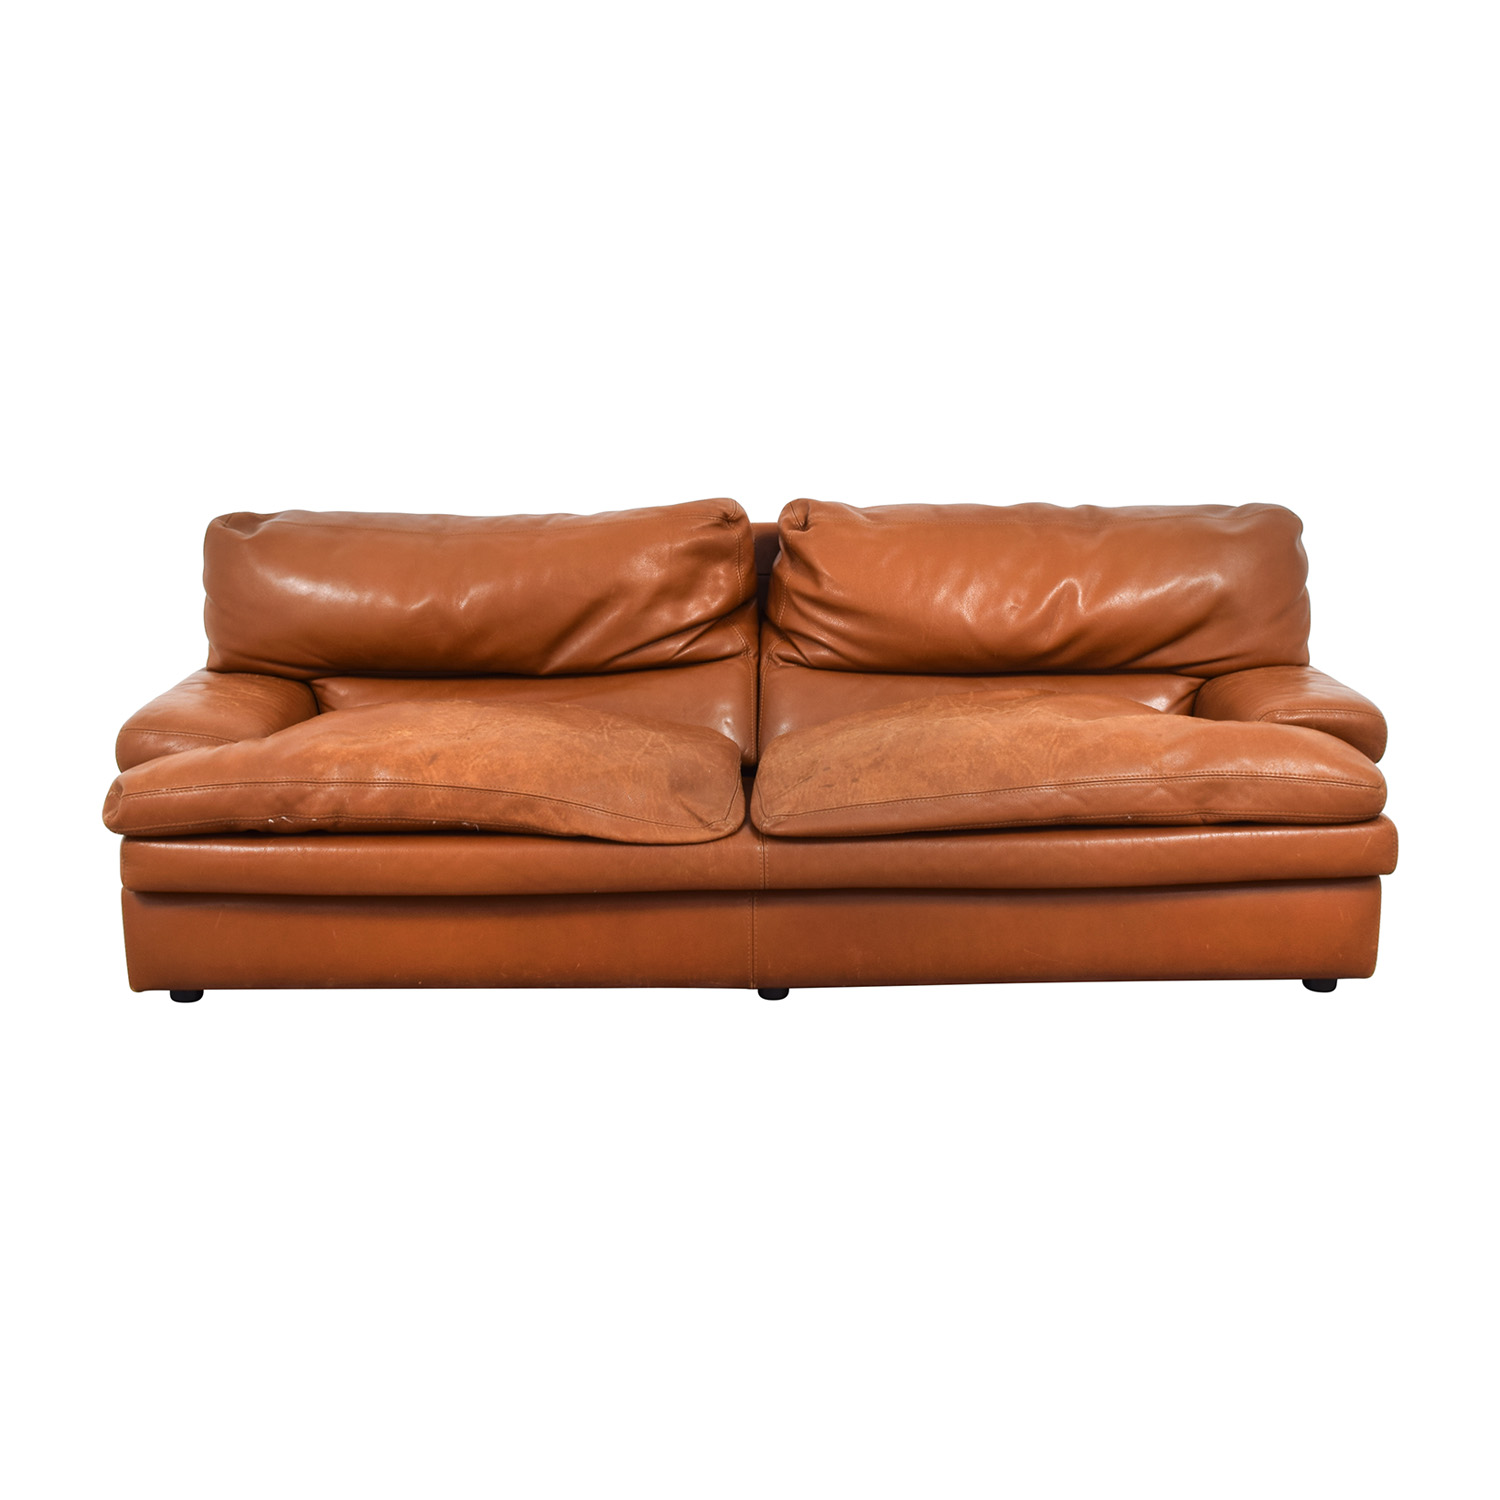 Roche Bobois Roche Bobois Burnt Orange Leather Sofa for sale